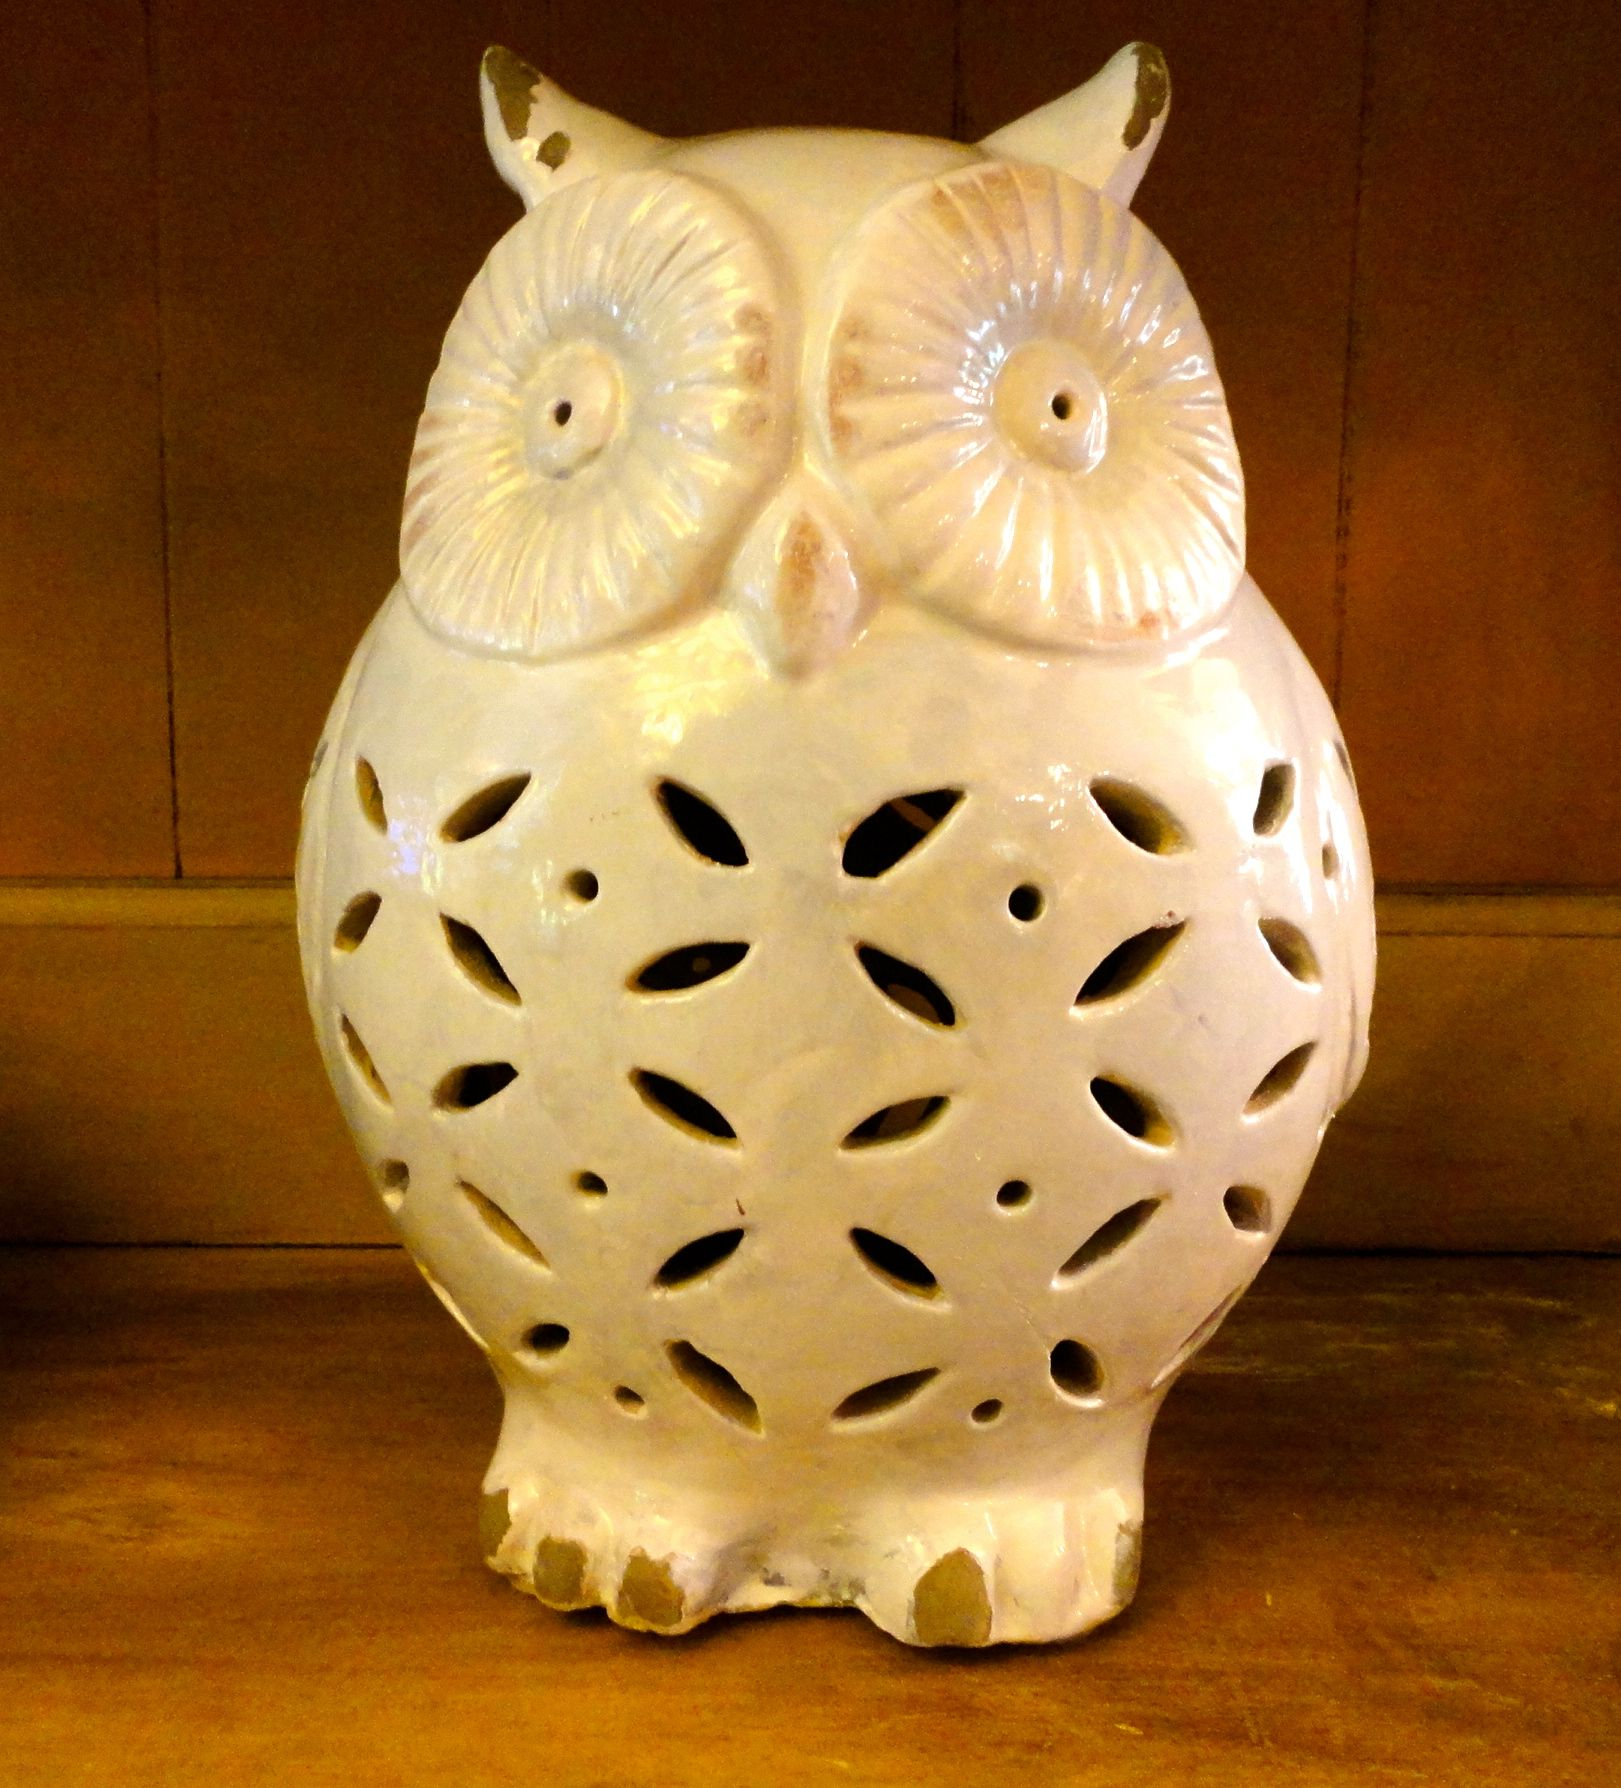 White Ceramic Owl Pottery Barn With Images Owl Pottery Ceramic Owl Pottery Barn